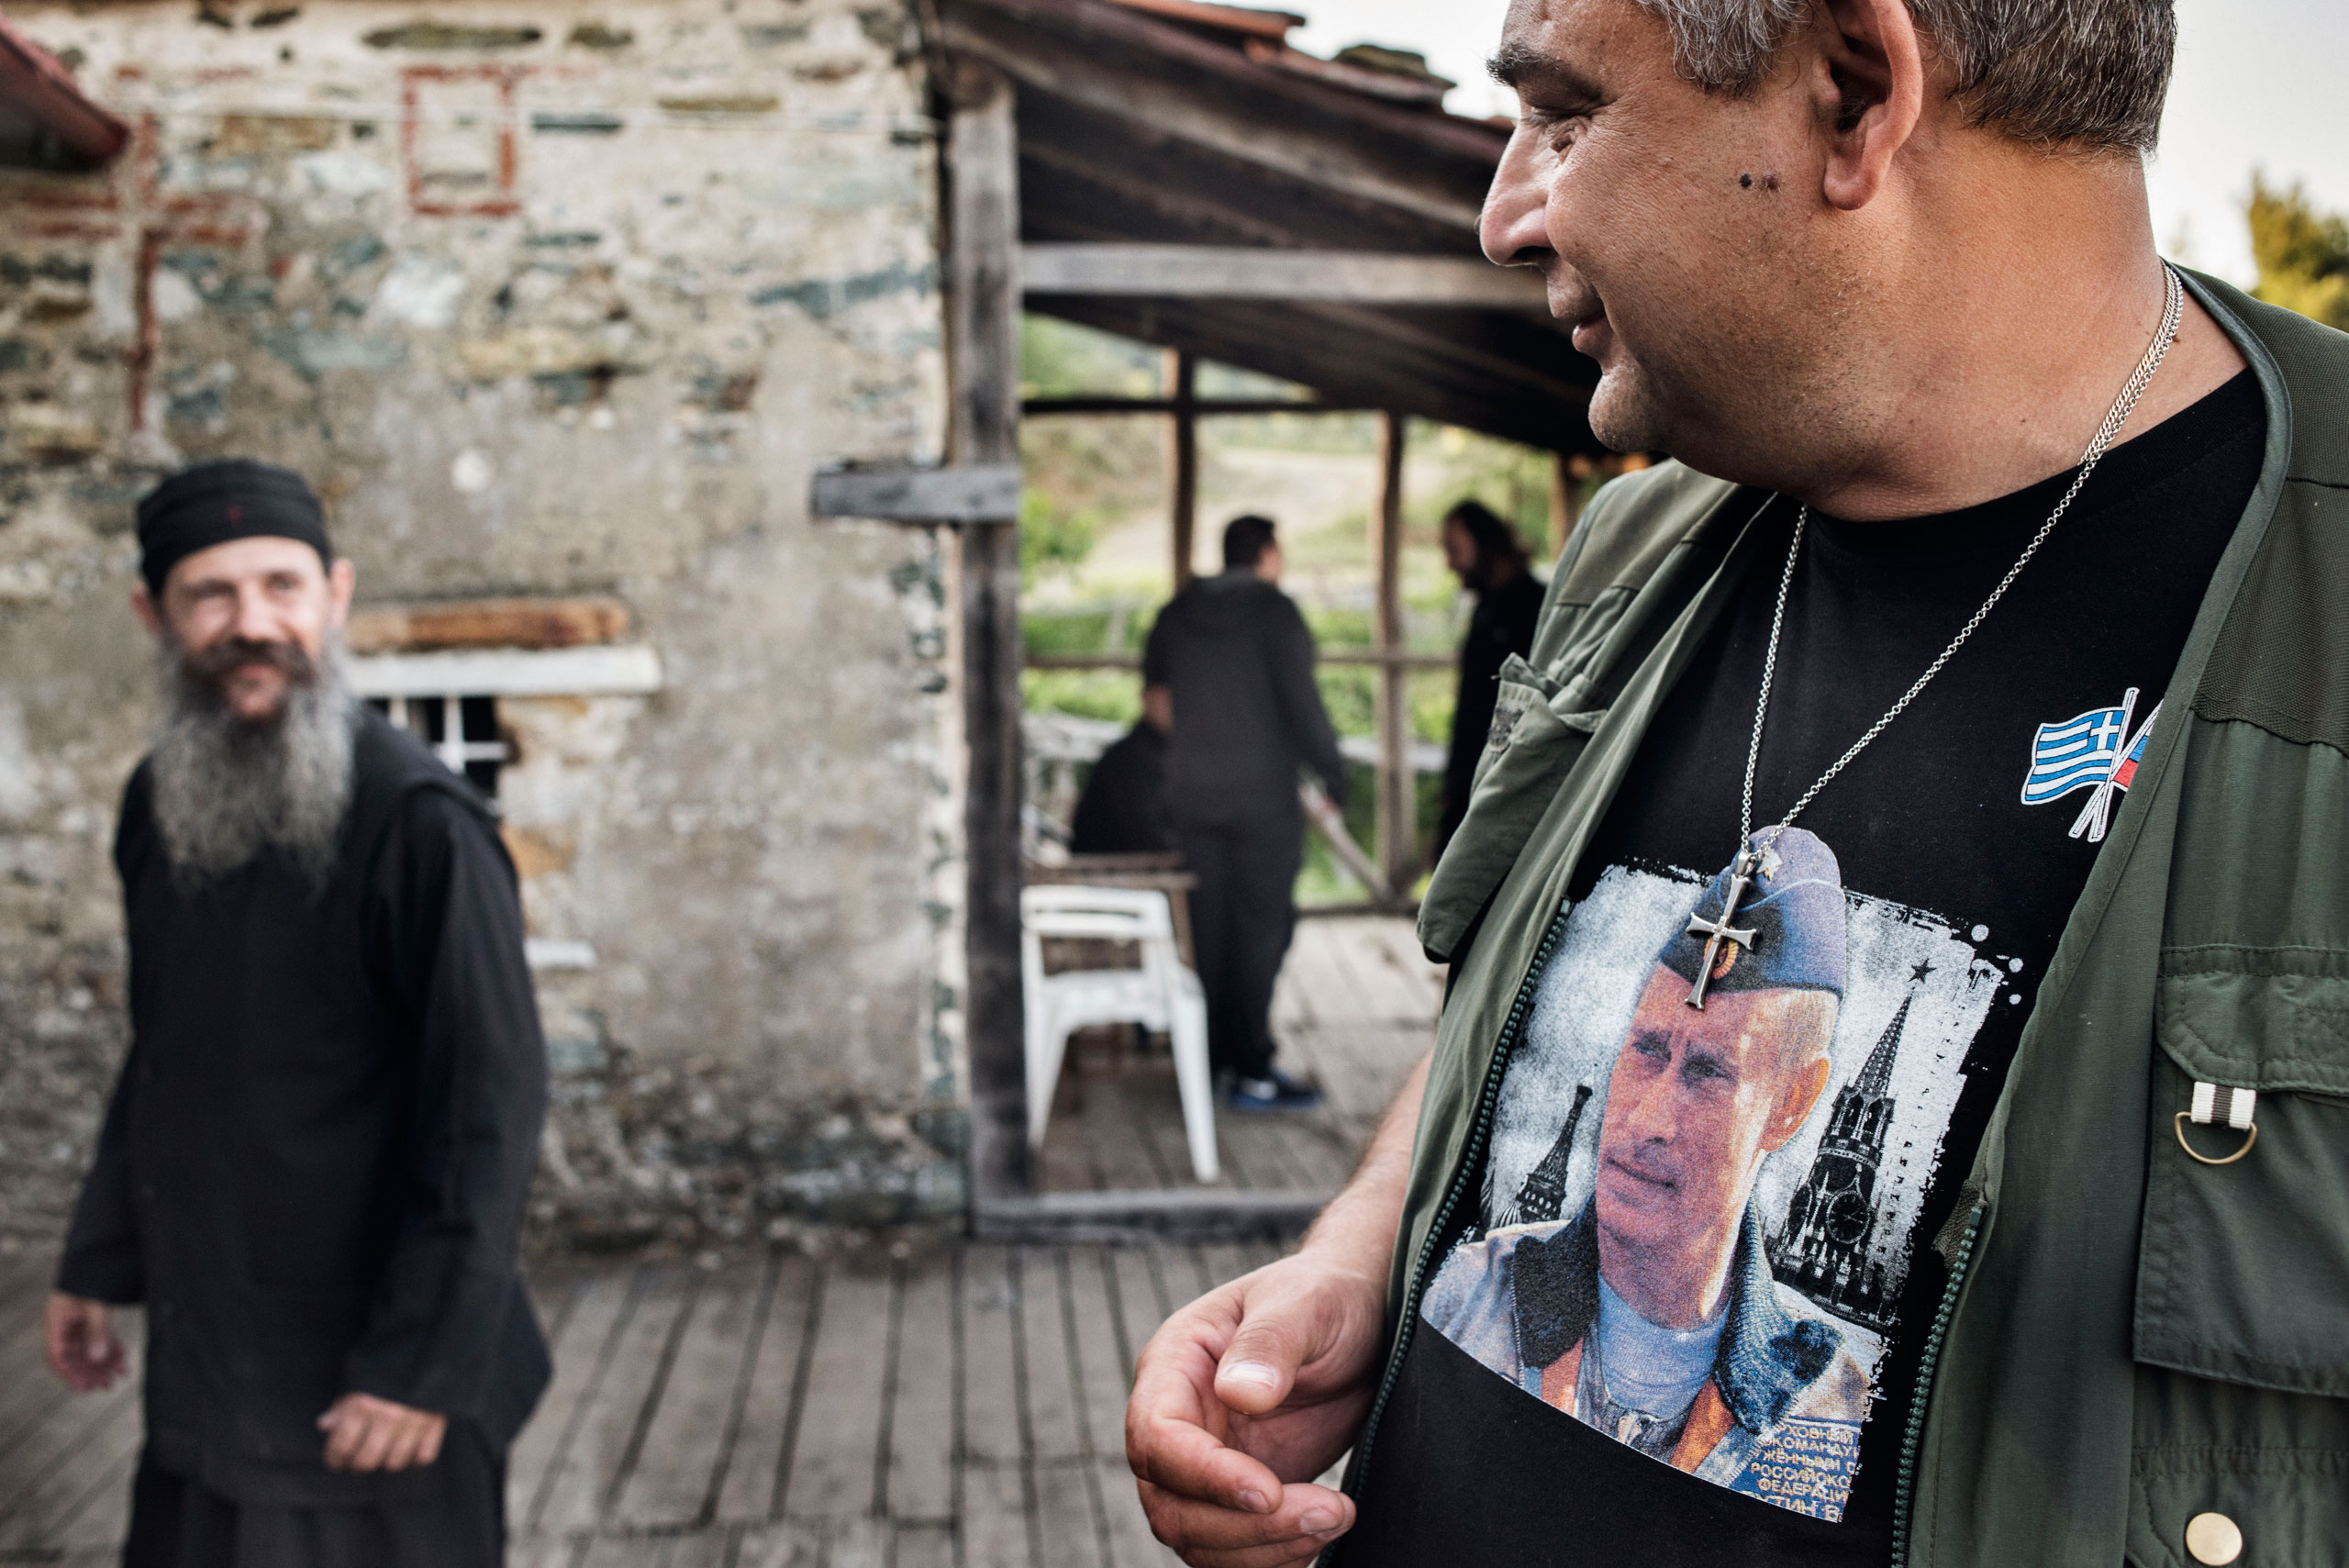 Andrei Borisov, a Ukrainian businessman, smiles at a Greek Orthodox monk at a monastic hermitage on Mount Athos, a peninsula in northern Greece that many Orthodox believers consider to be one of the holiest places in the world, May 28, 2016. Borisov earns his living by organizing tours to Mount Athos for wealthy pilgrims, primarily from Russia and Ukraine. T-shirts like the one he is wearing, with a depiction of Russian President Vladimir Putin, are sometimes sold to visiting pilgrims at gift shops on Mount Athos.